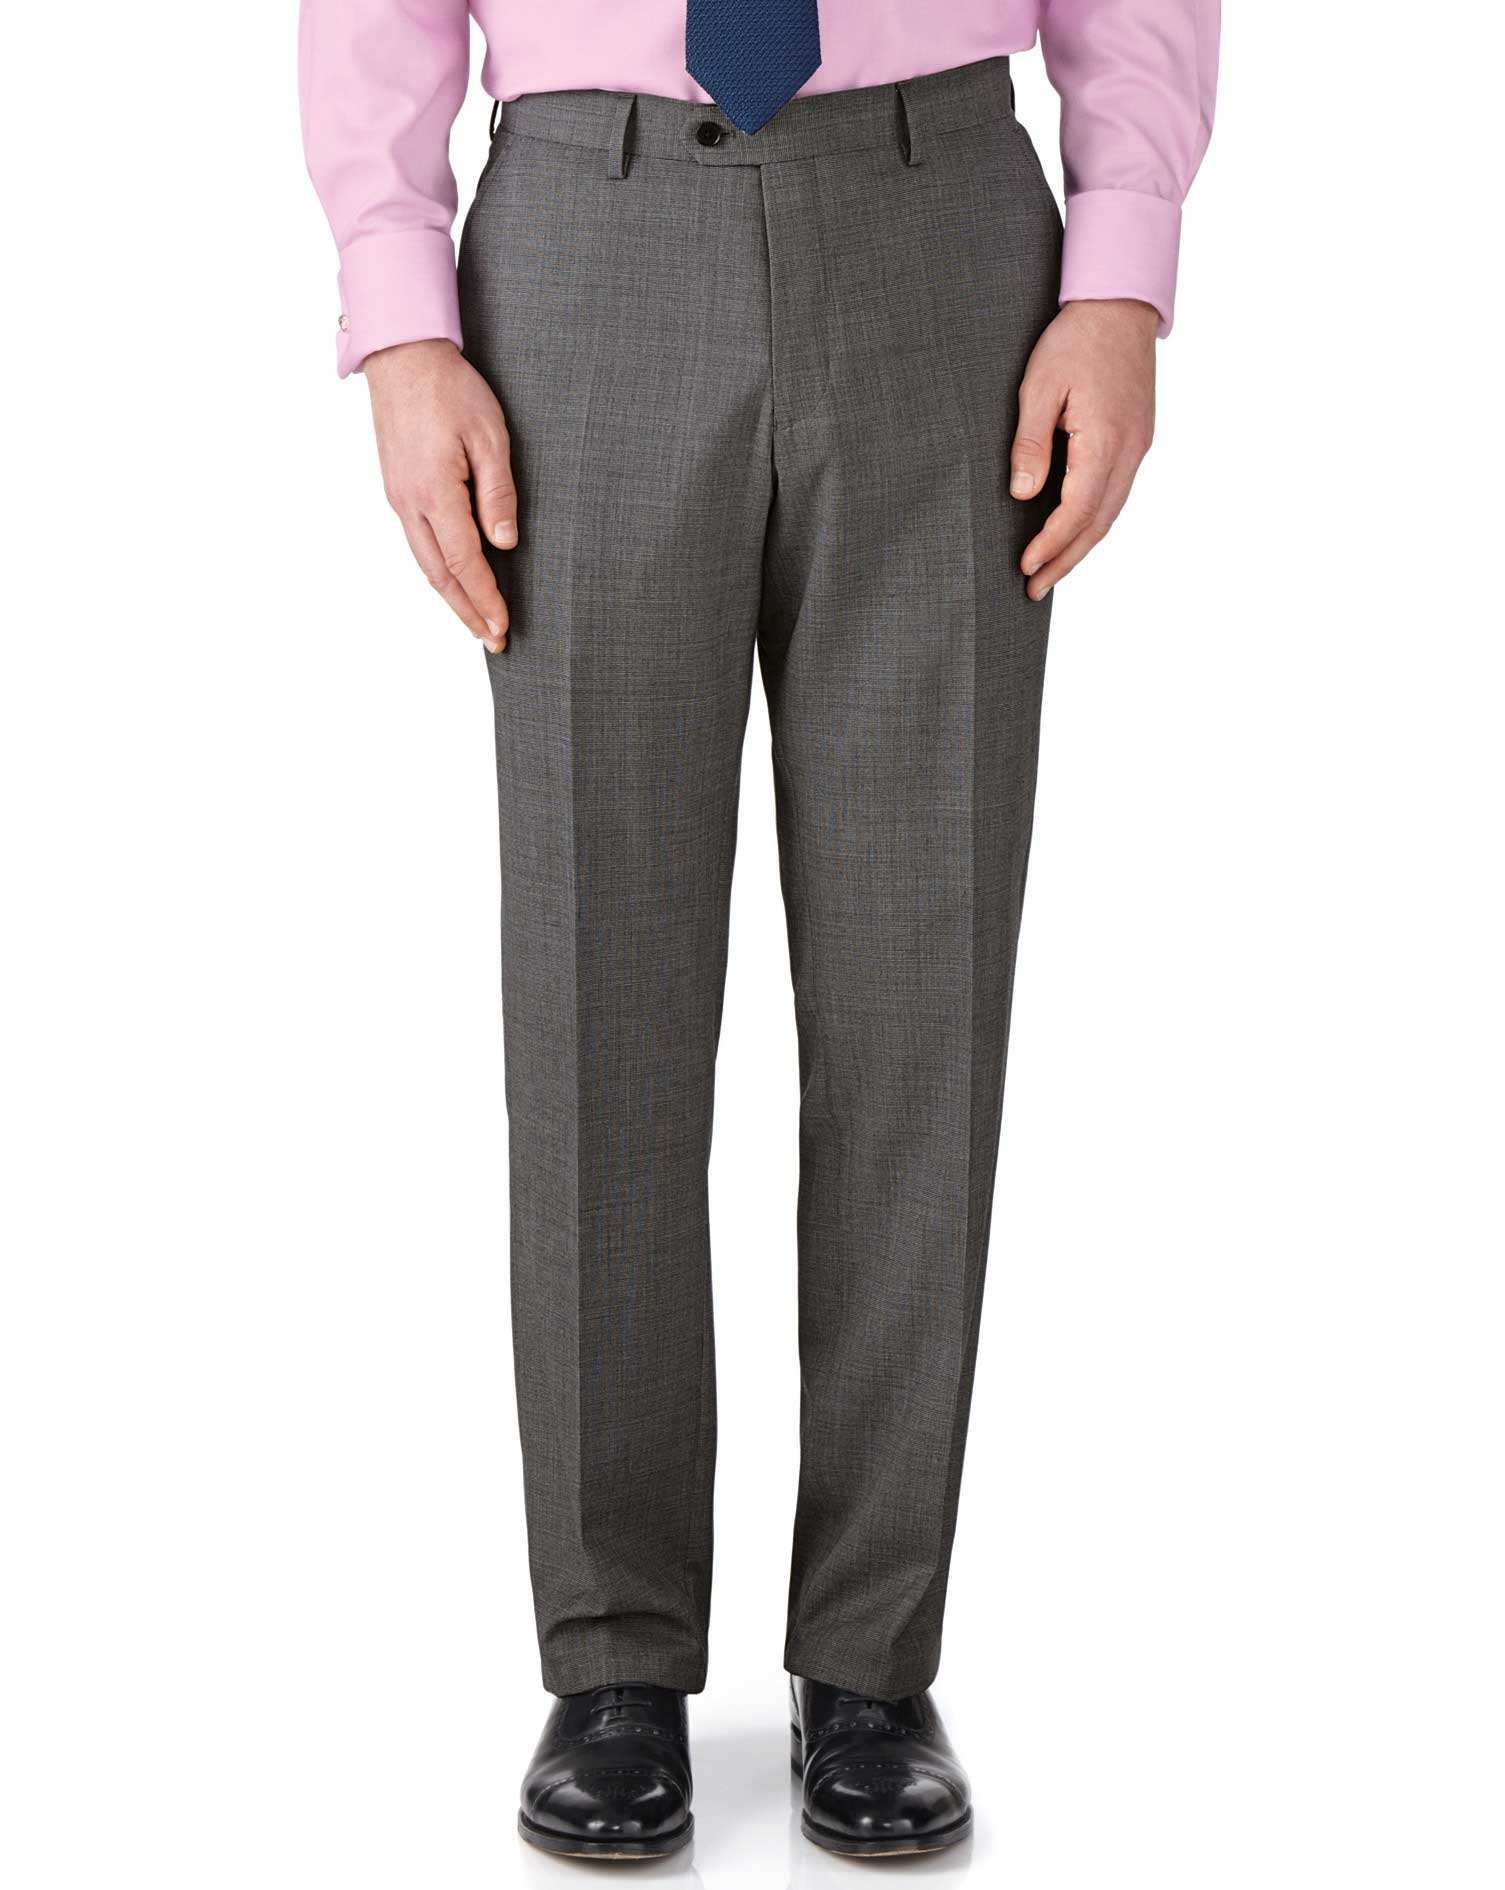 Grey Classic Fit End-On-End Business Suit Trousers Size W42 L32 by Charles Tyrwhitt